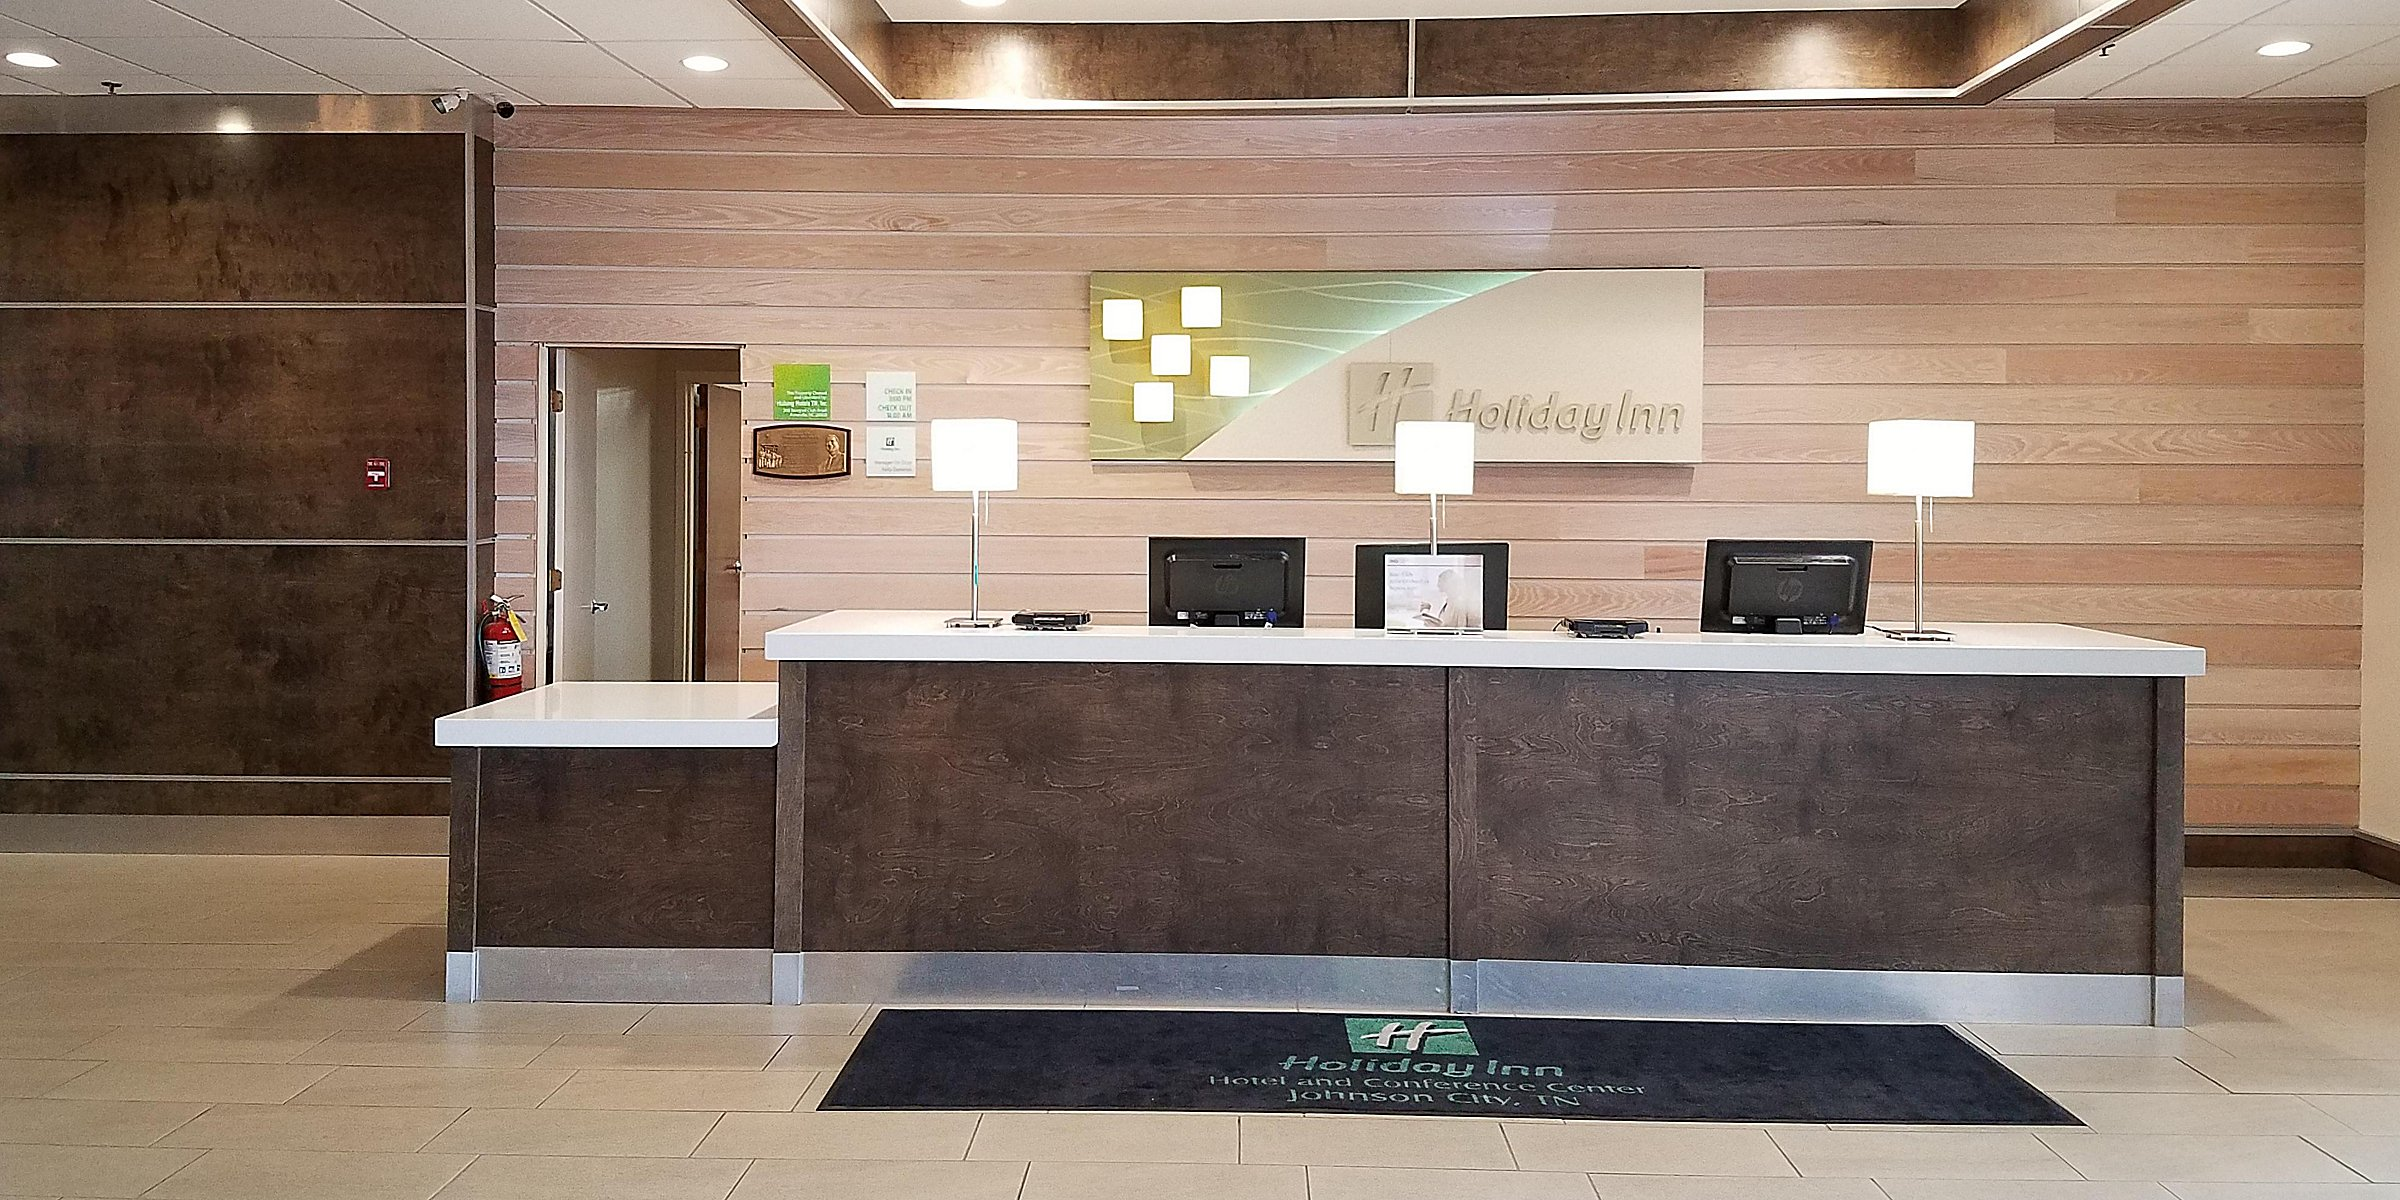 Pet Friendly Hotels In Johnson City Tennessee Holiday Inn Johnson City